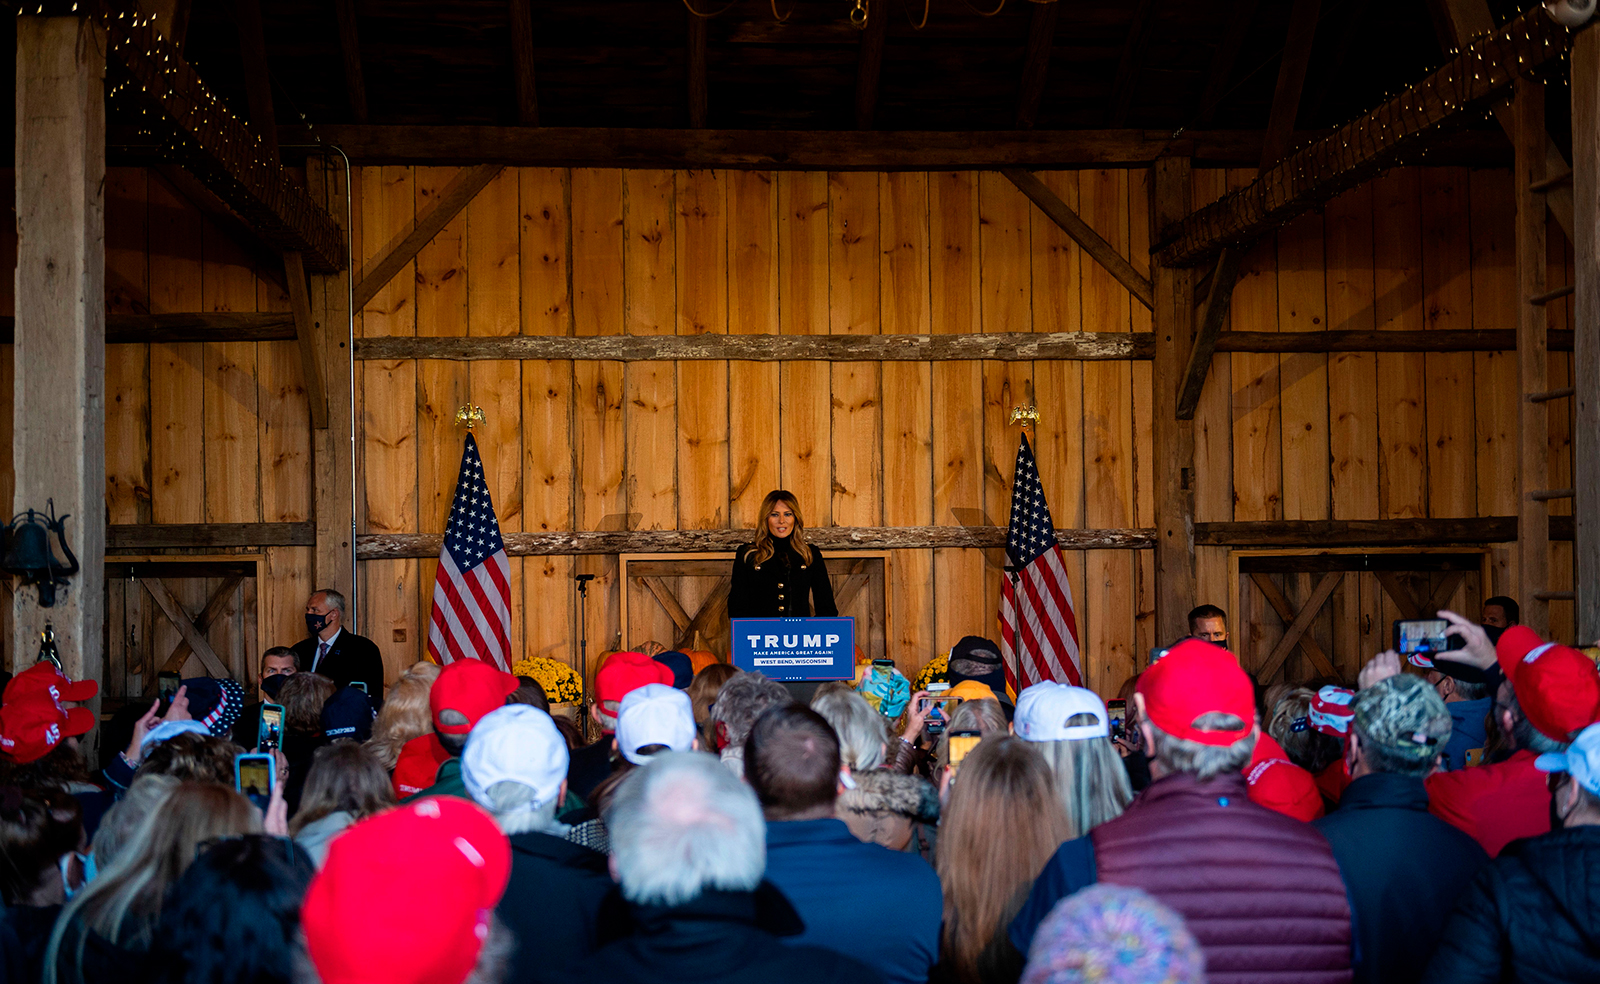 US First Lady Melania Trump speaks during a campaign rally at Kingsheart Farm in West Bend, Wisconsin on October 31.